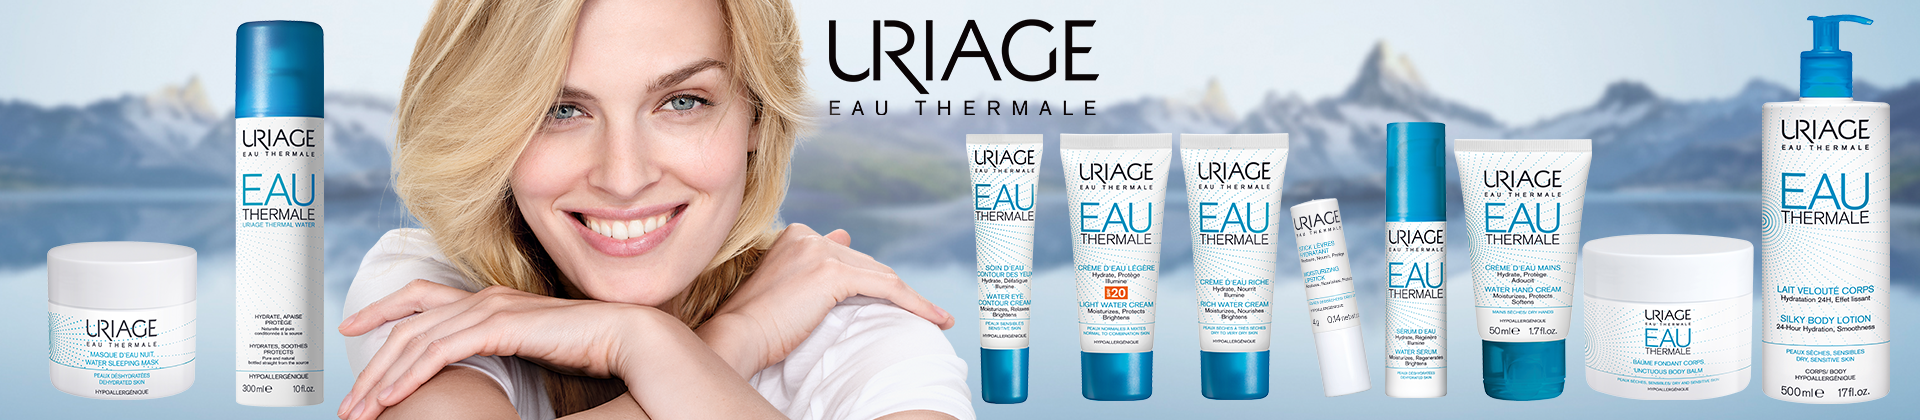 uriage_eau_thermale